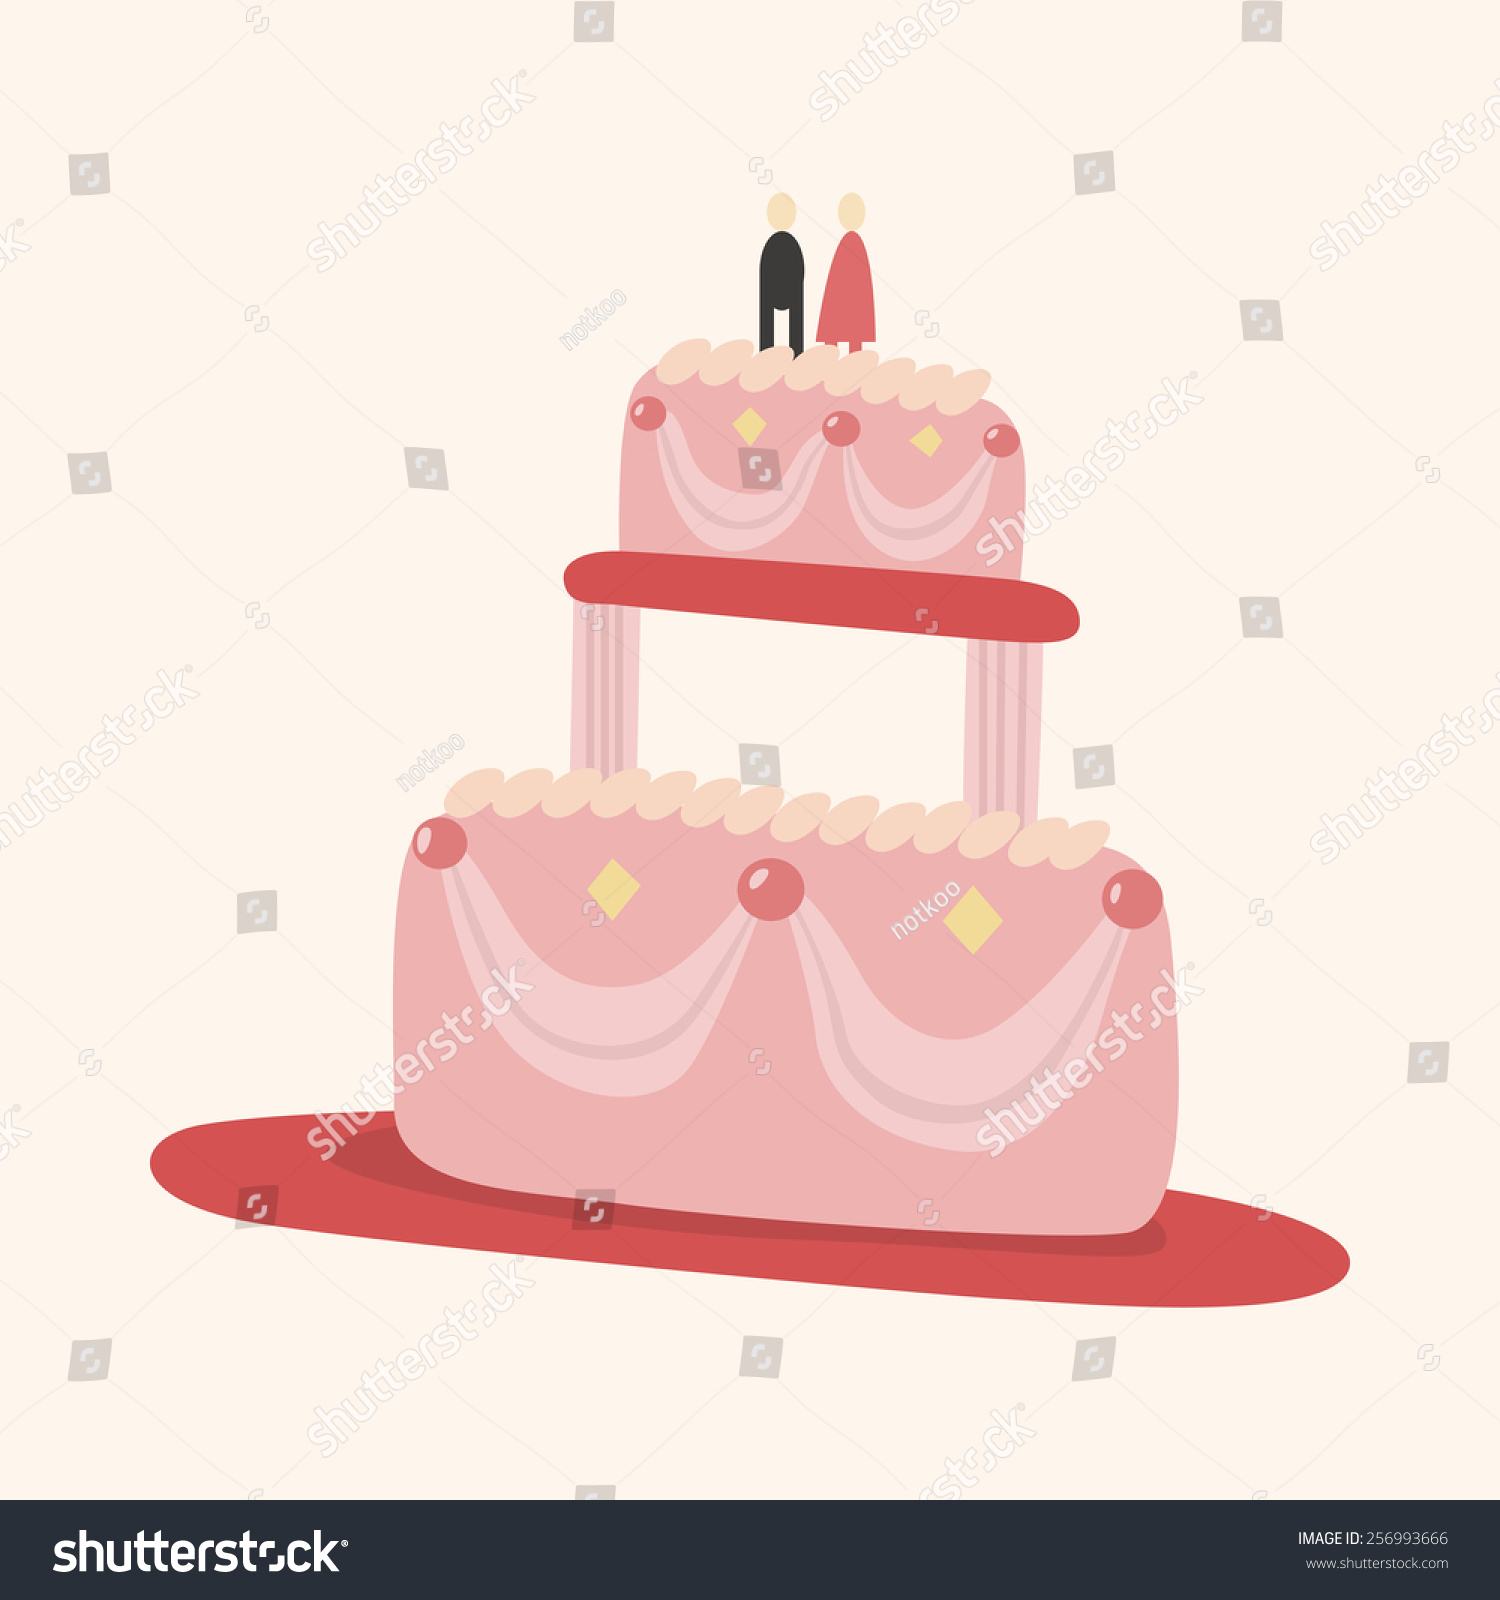 Cake Decorating Stock Images : Decorating Cake Theme Elements Vectoreps10 Stock Vector ...